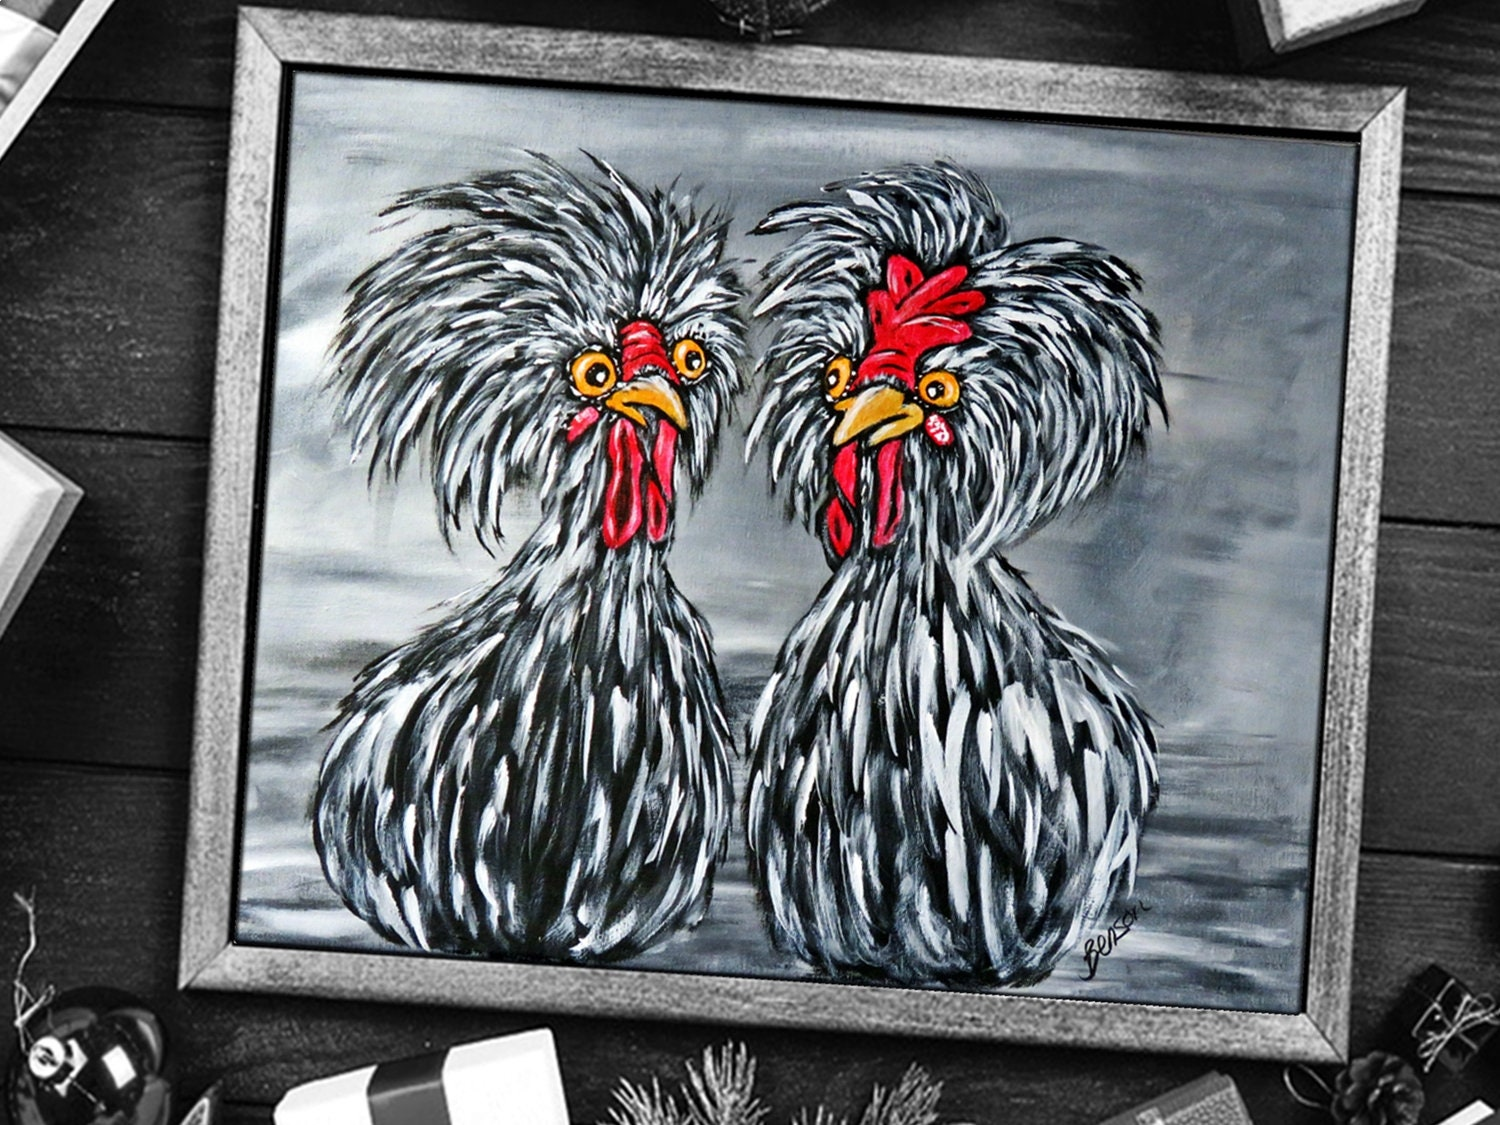 Original Acrylic Painting On Canvas Chicken Art Whimsical Kitchen